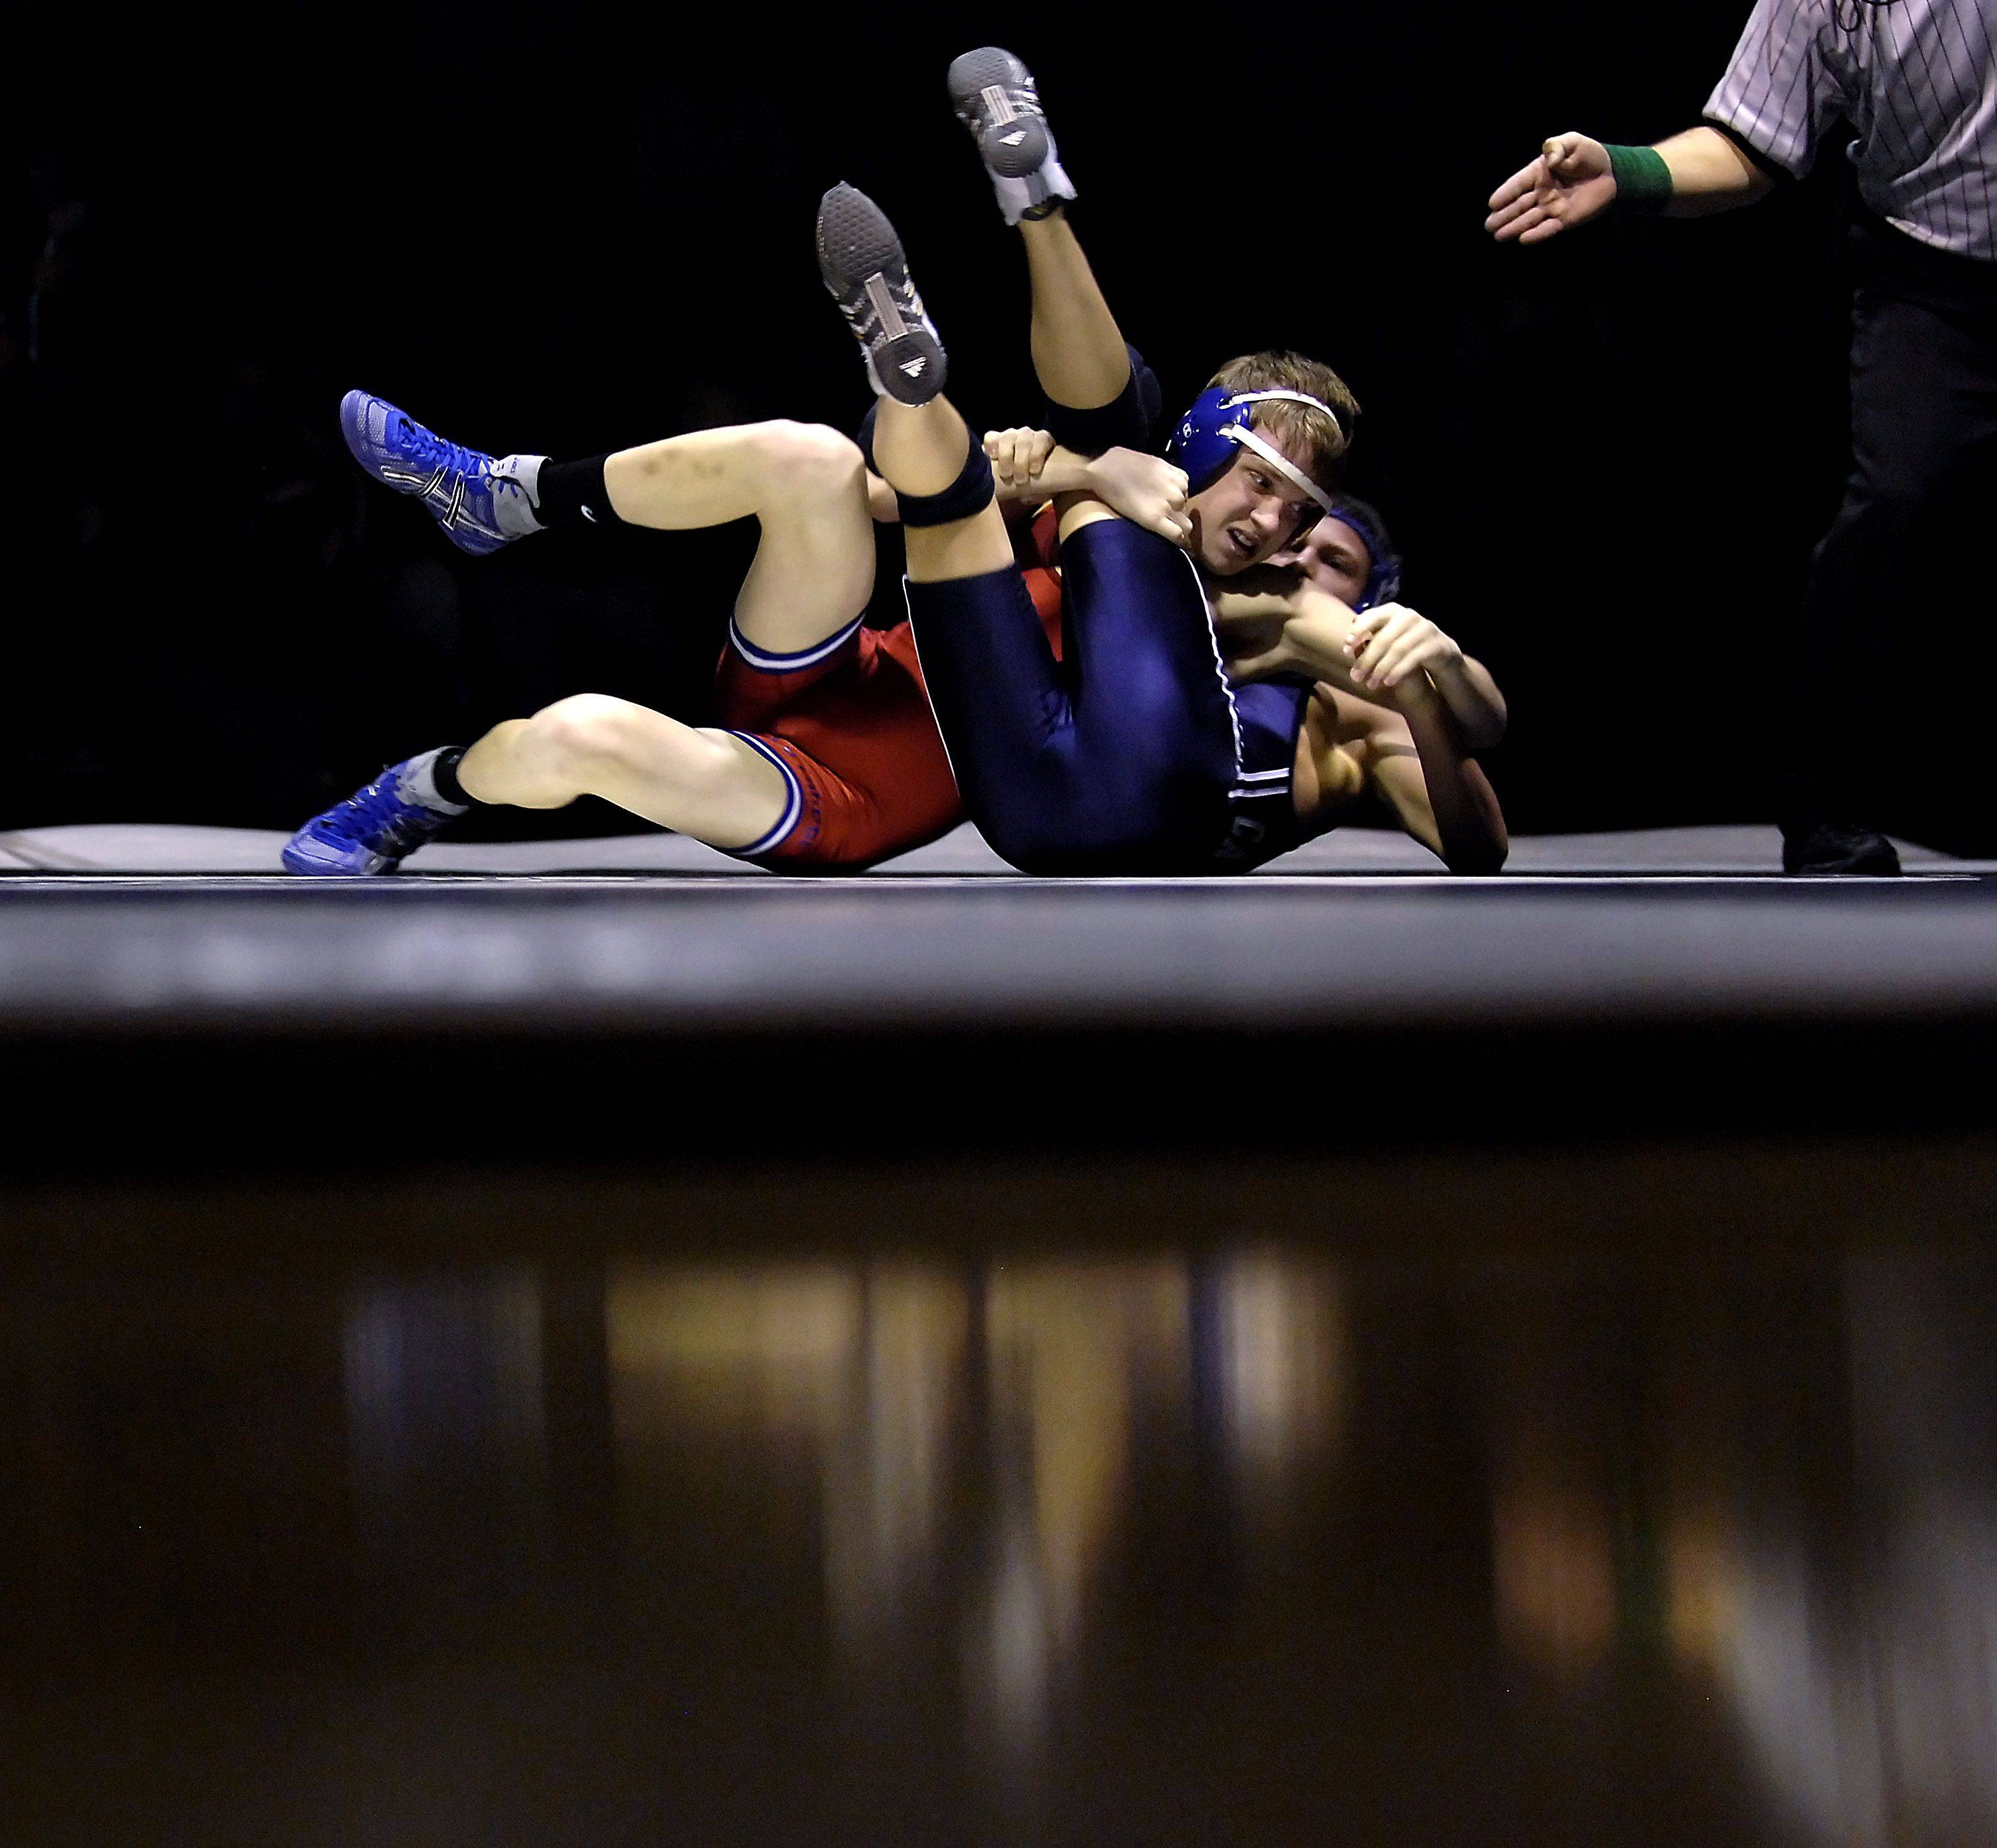 Dundee-Crown's Travell Rounds and Cary-Grove's Zach Spielmann, right, are reflected in the gymnasium floor during their 119-pound match Thursday in Cary. Rounds won the match.